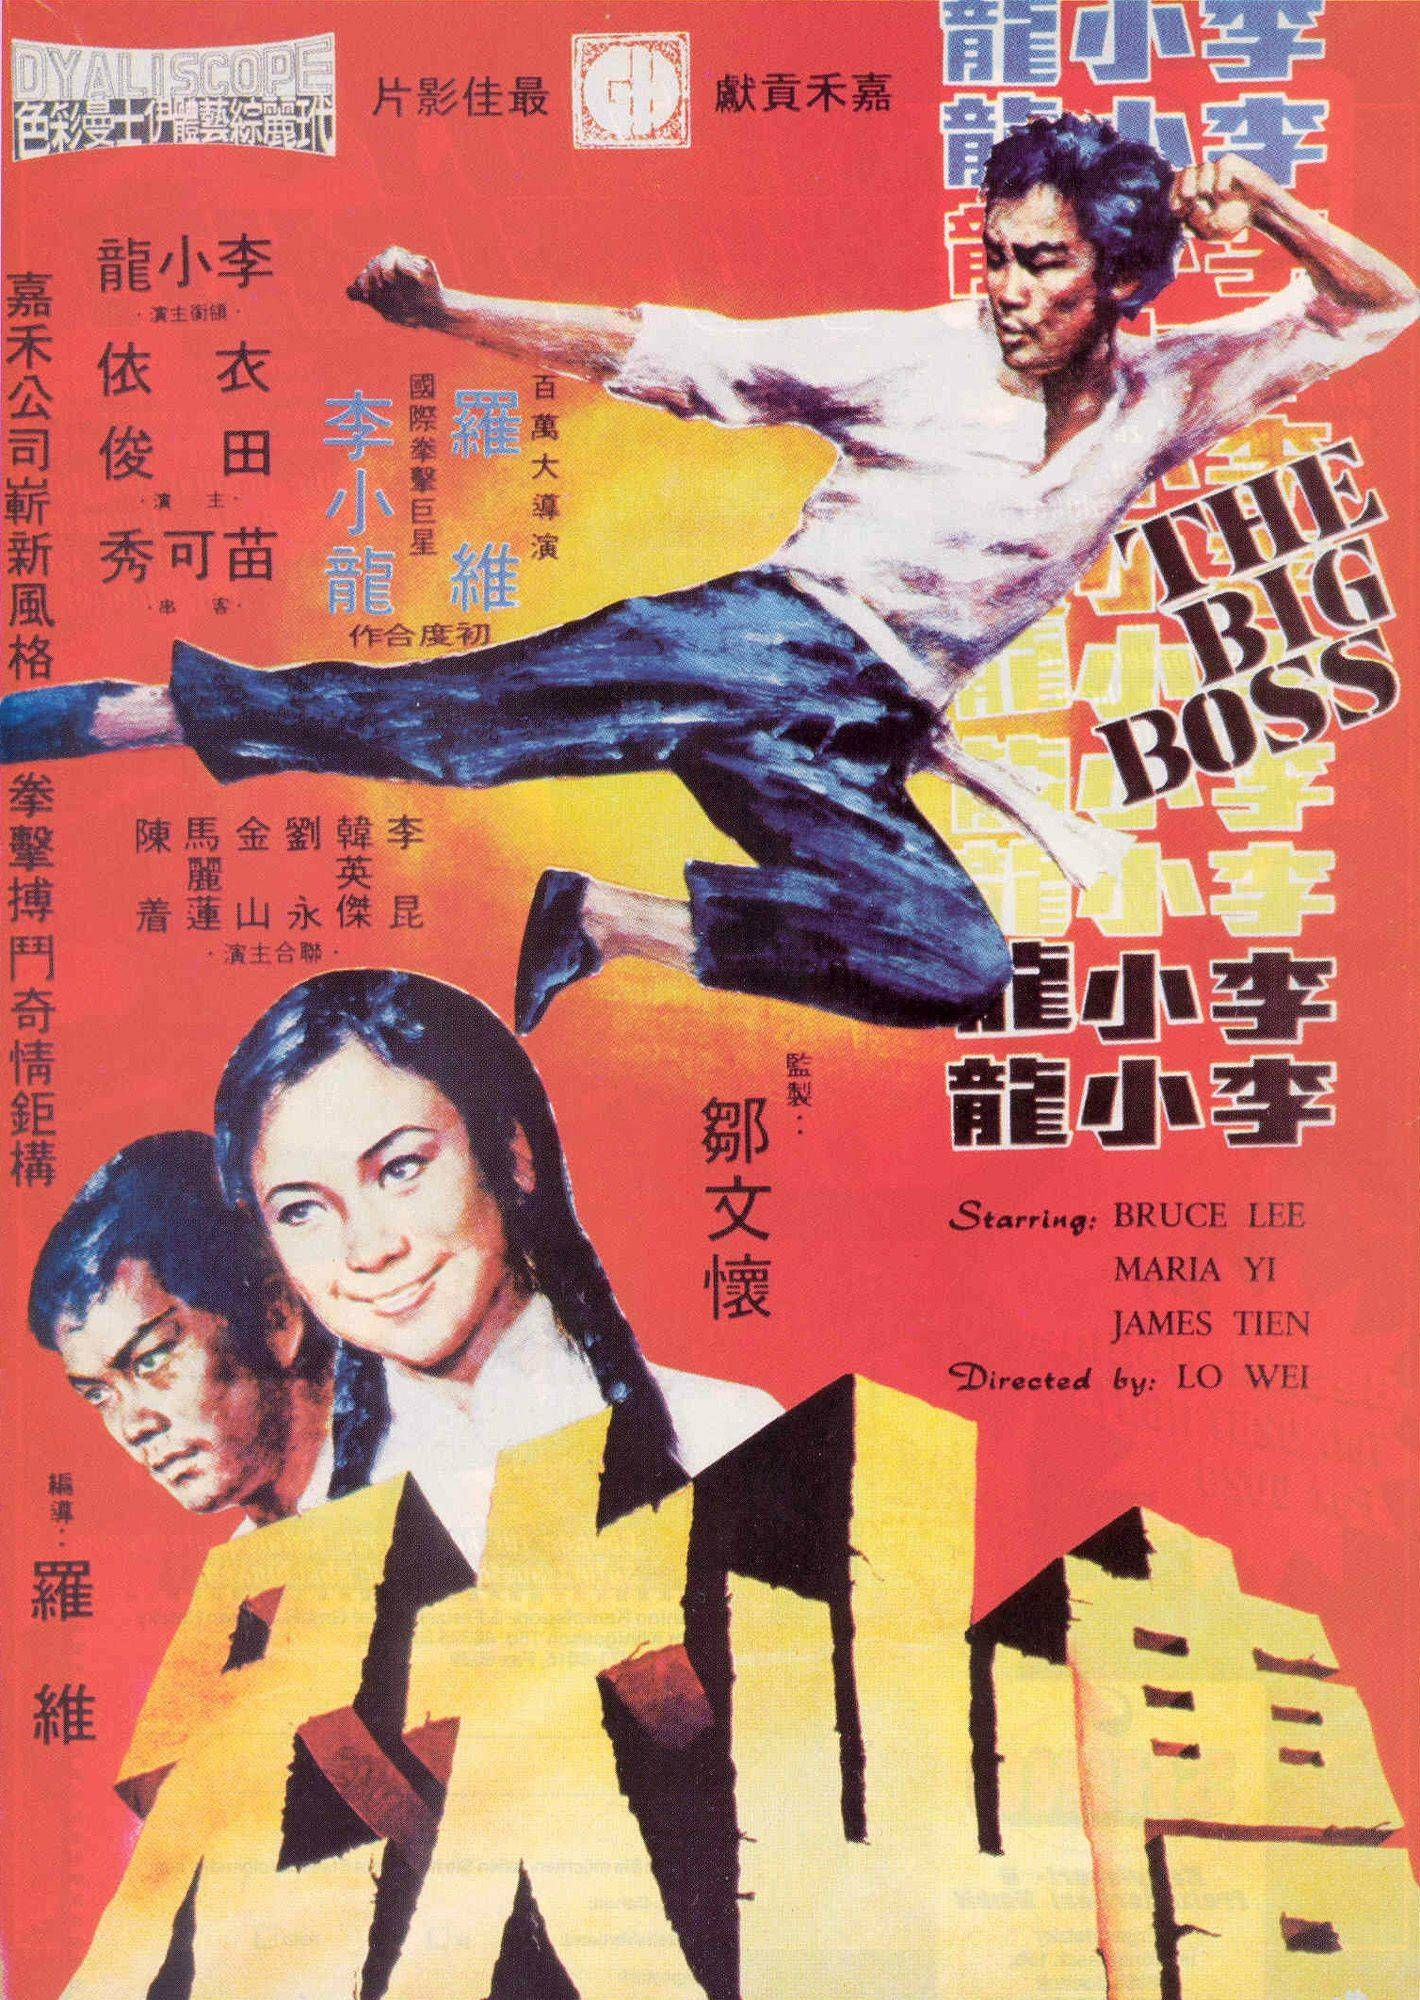 The Big Boss Chinese poster